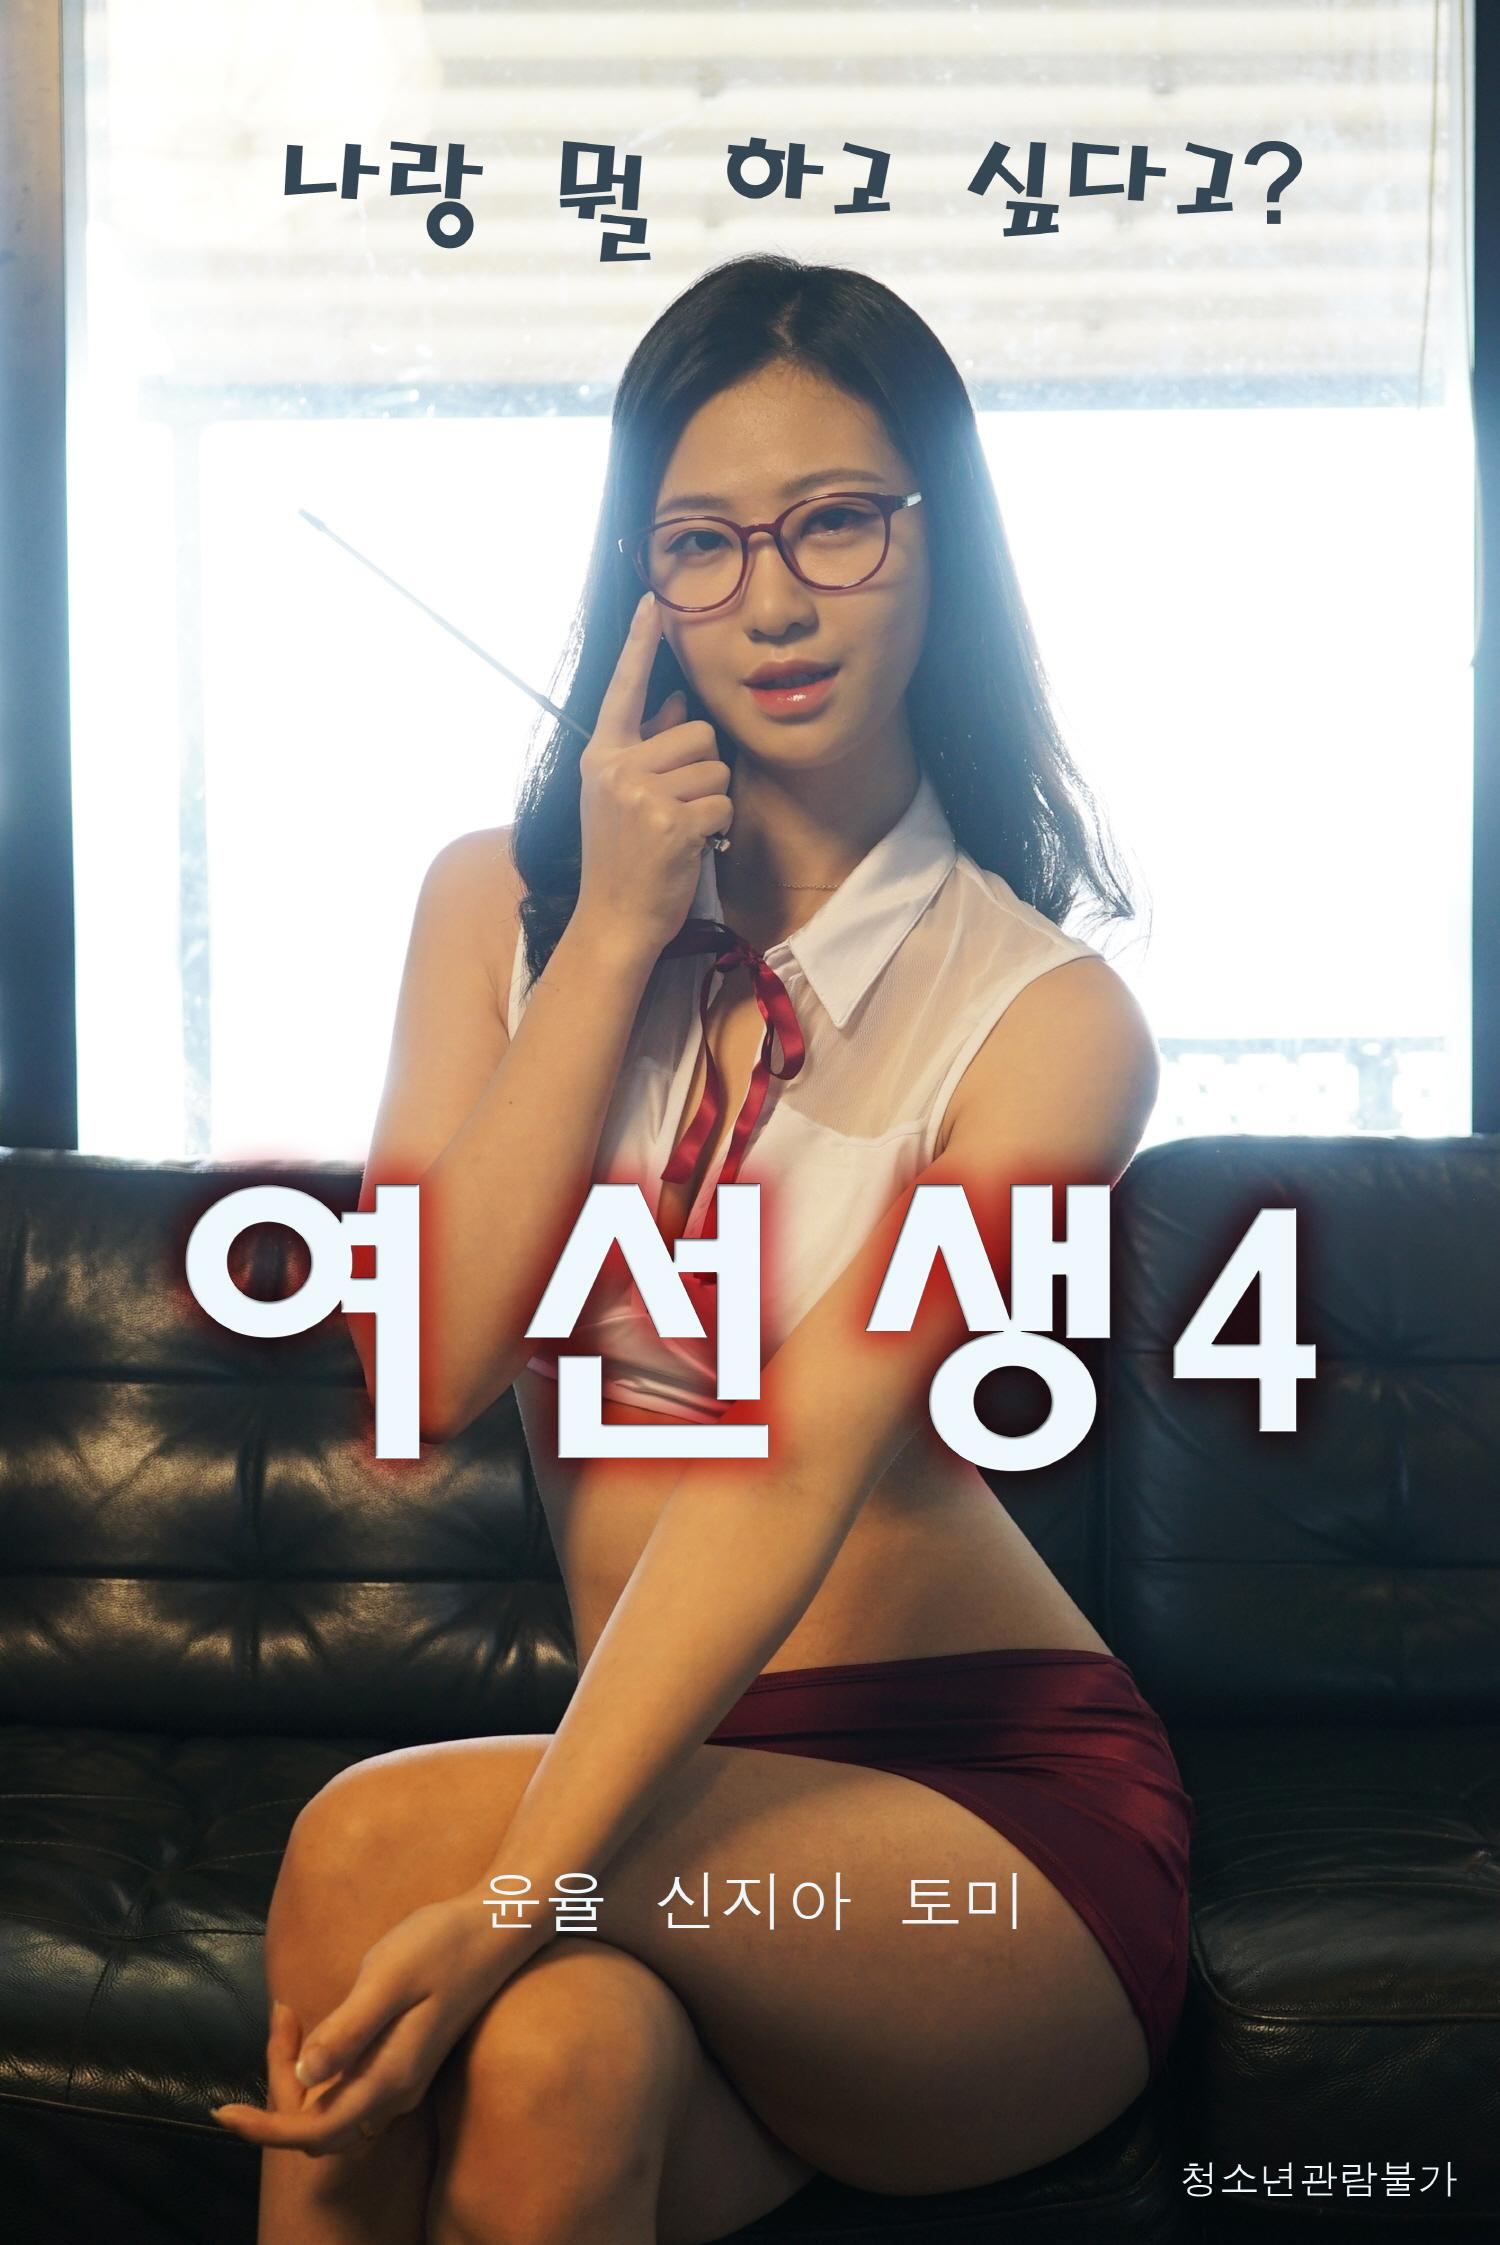 Mistress 4 (2021) UNRATED 720p HEVC HDRip Korean Hot Movie x265 AAC [550MB]